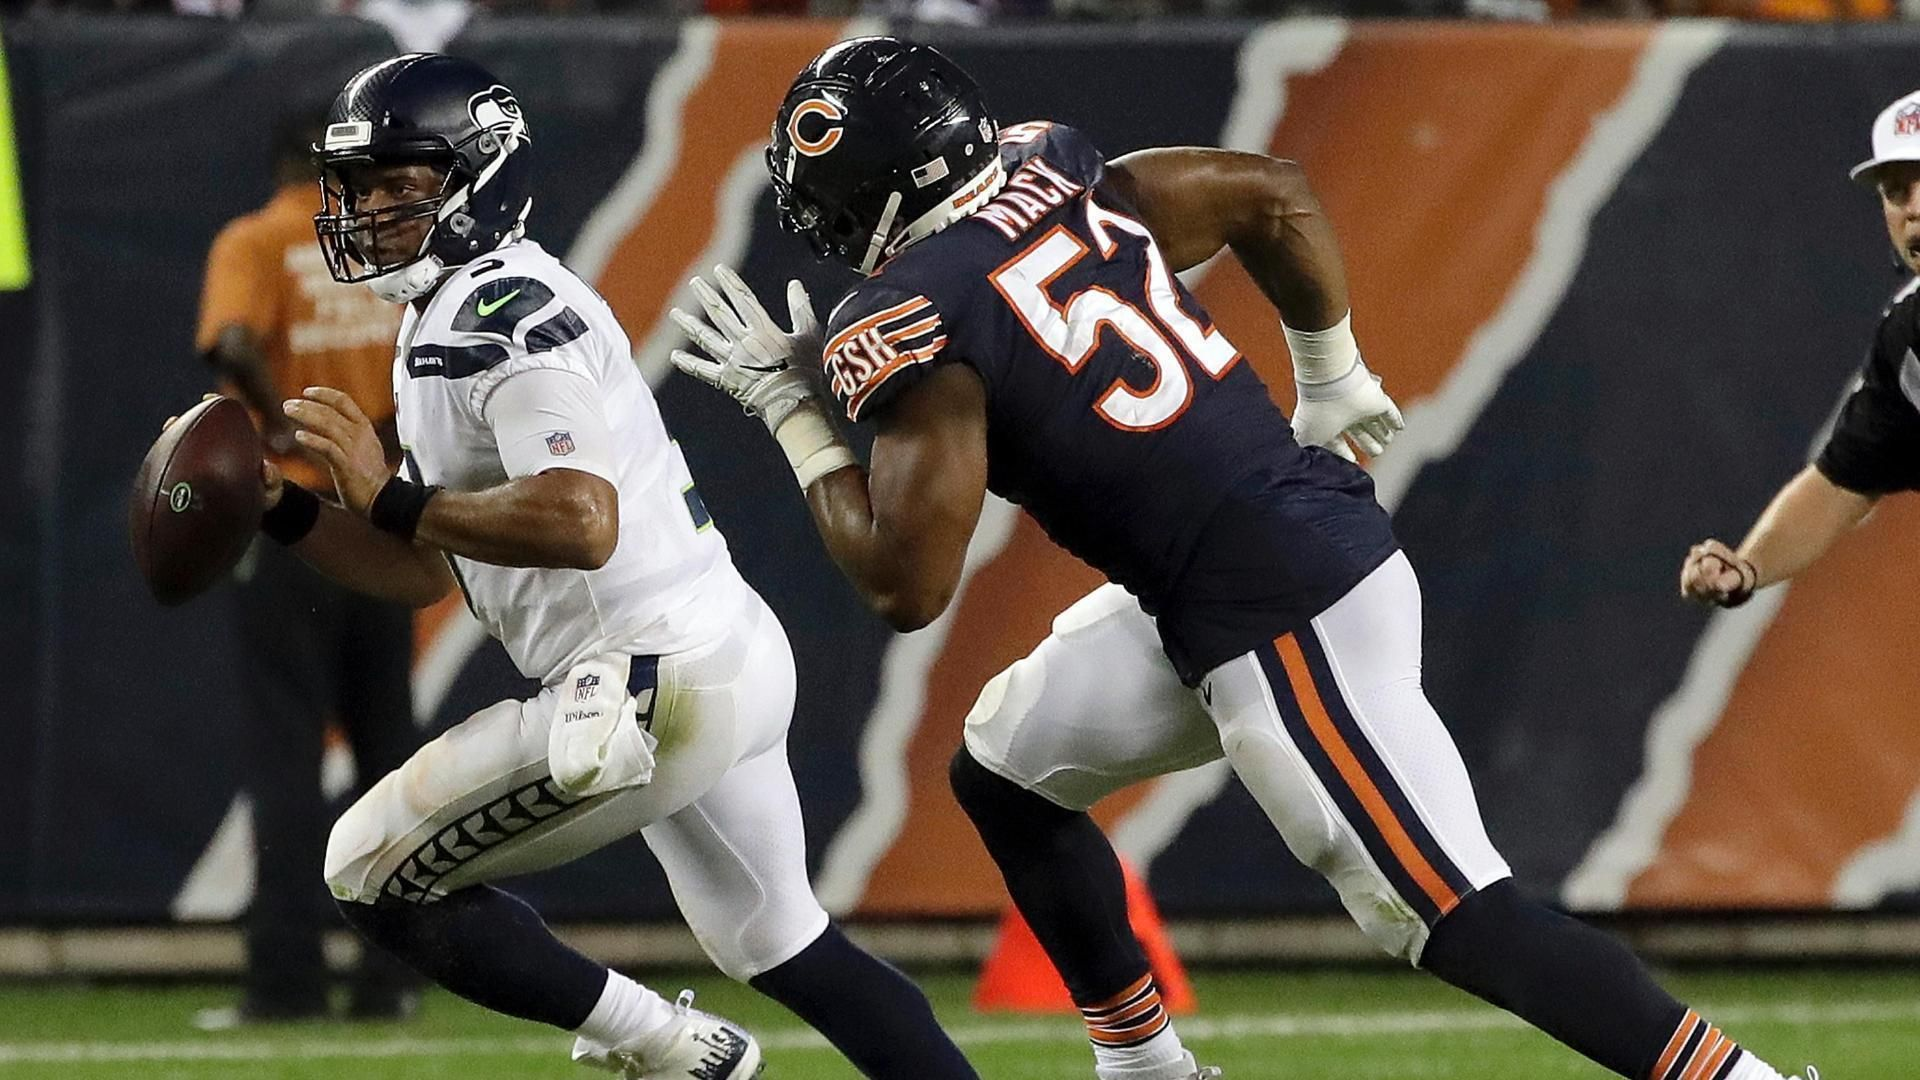 Bears' defense comes up big against Seahawks